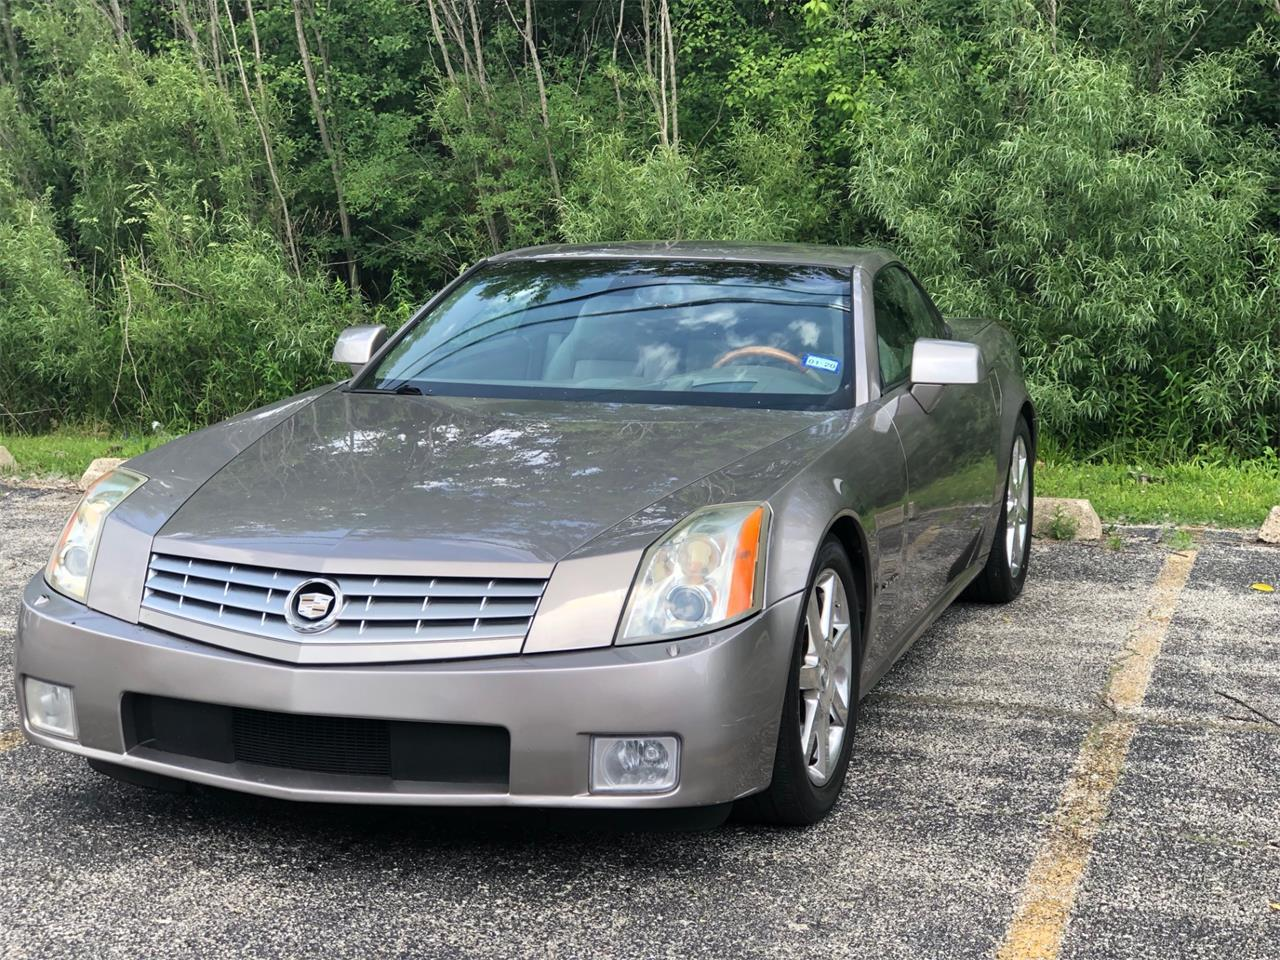 Large Picture of 2004 Cadillac XLR located in Illinois - $15,995.00 - QC99